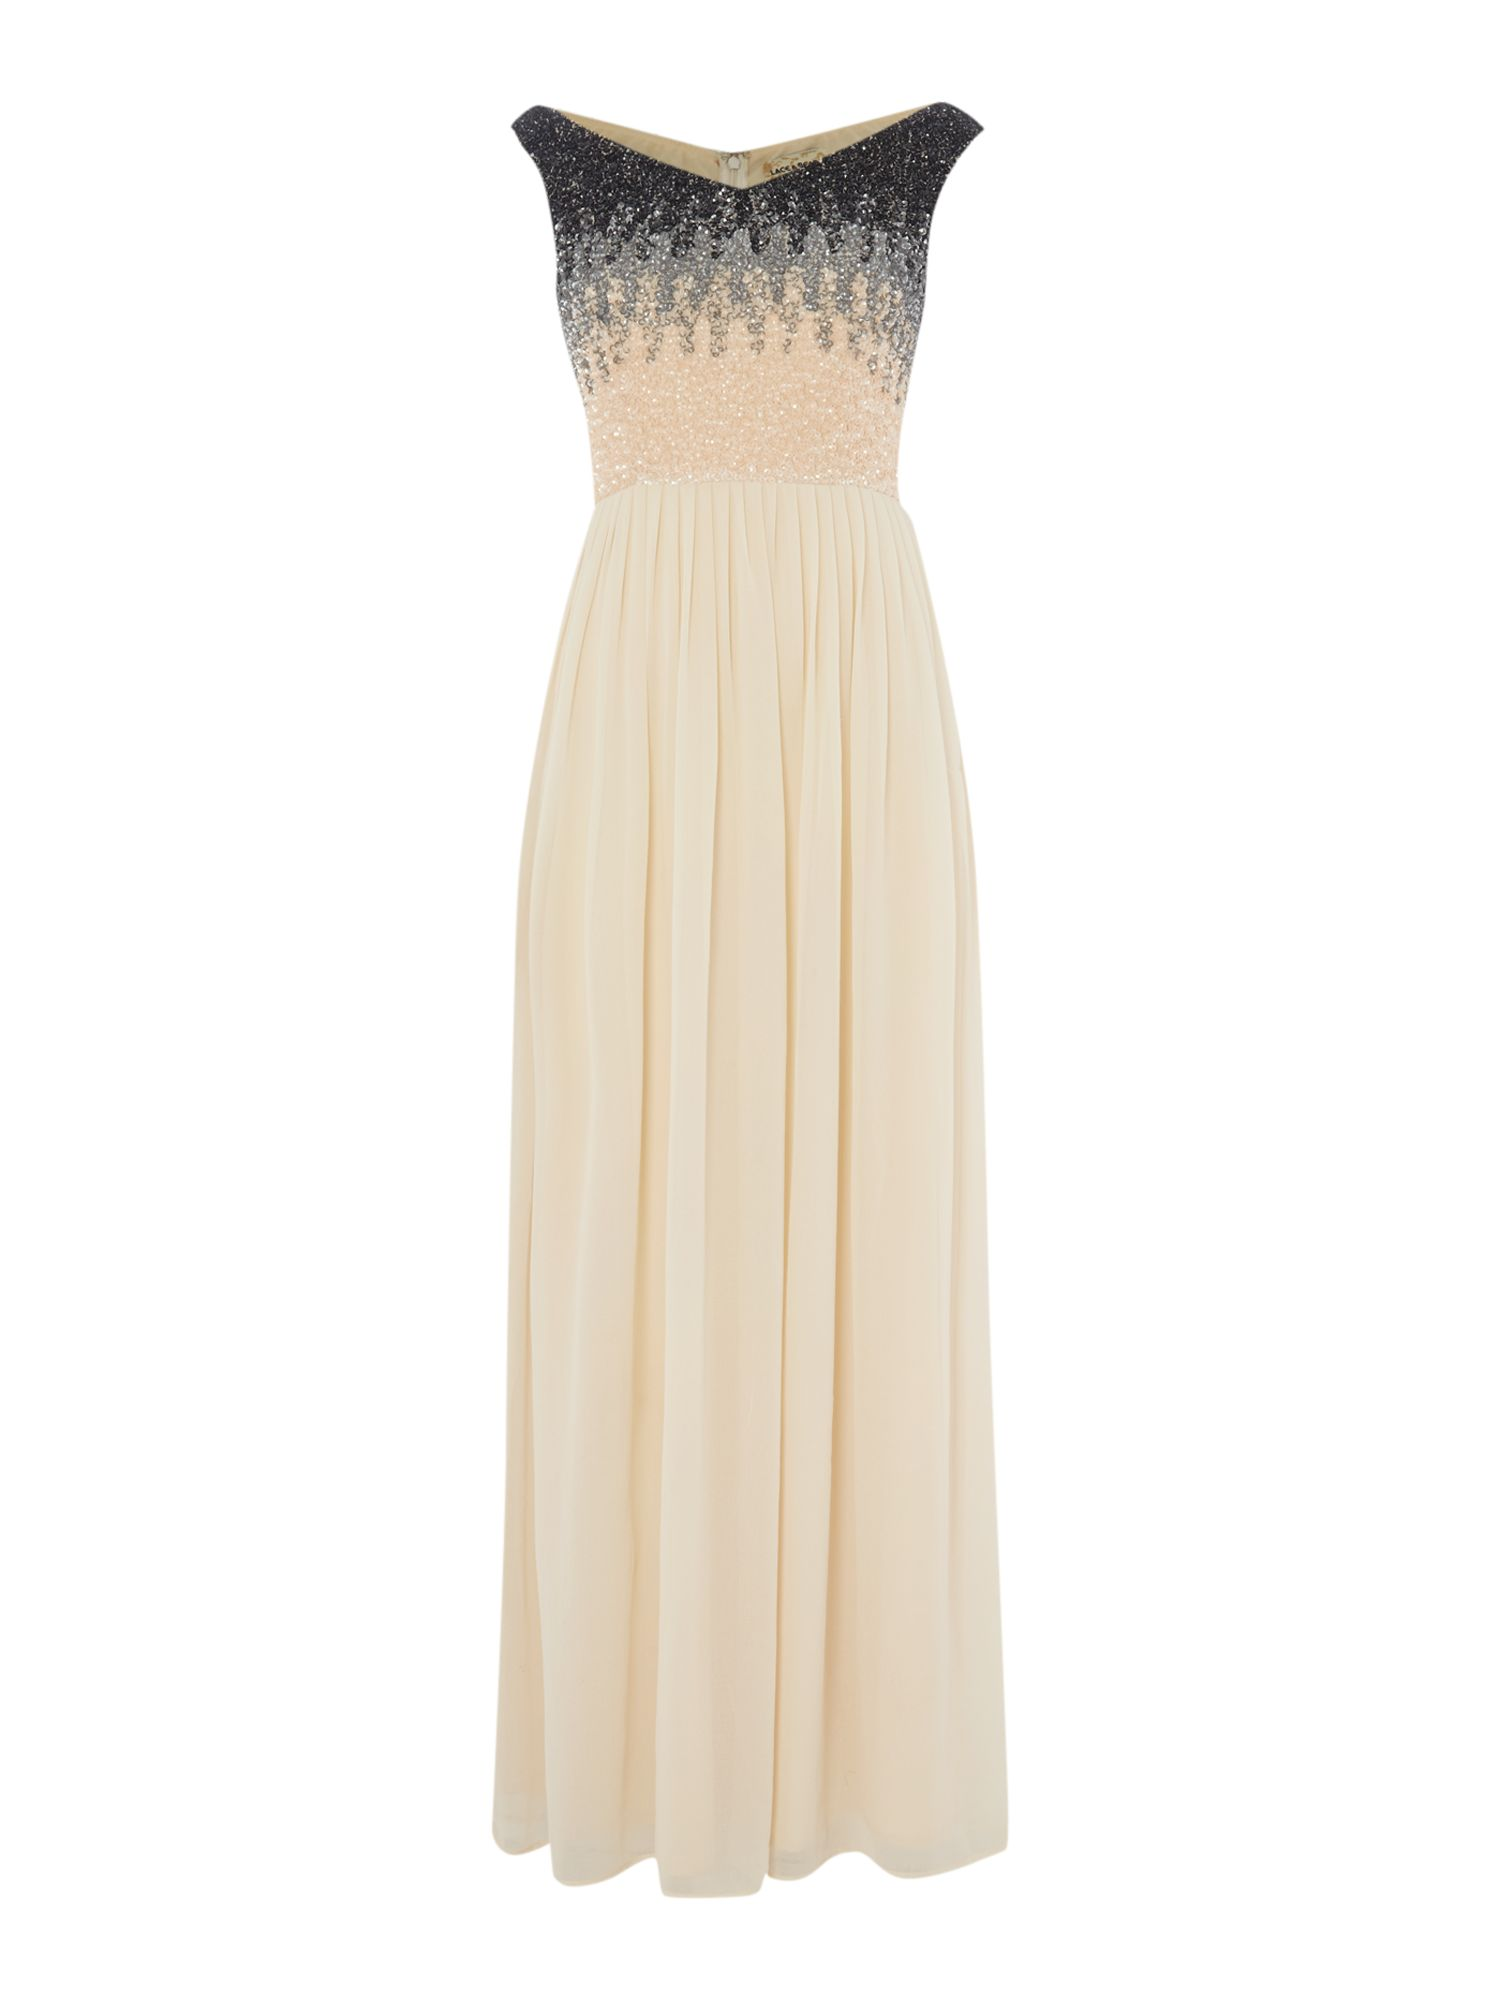 Lace and Beads Lace and Beads Off Shoulder Ombre Sequin Maxi Dress, Black Gold